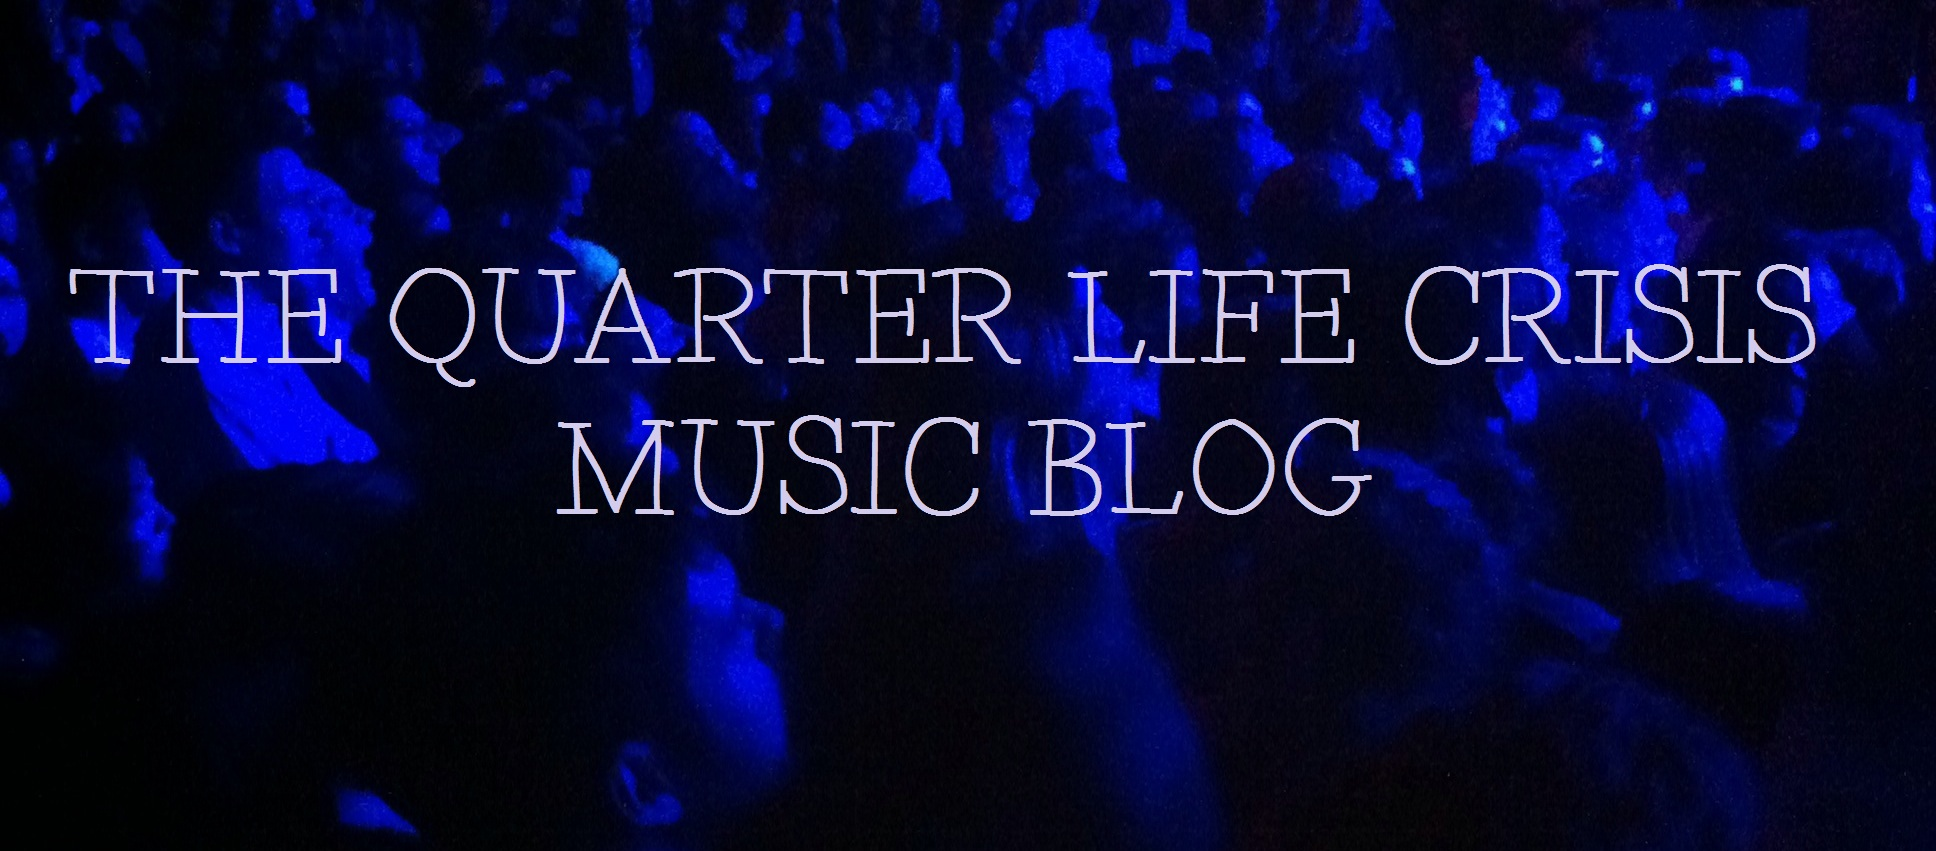 The Quarter Life Crisis Music Blog